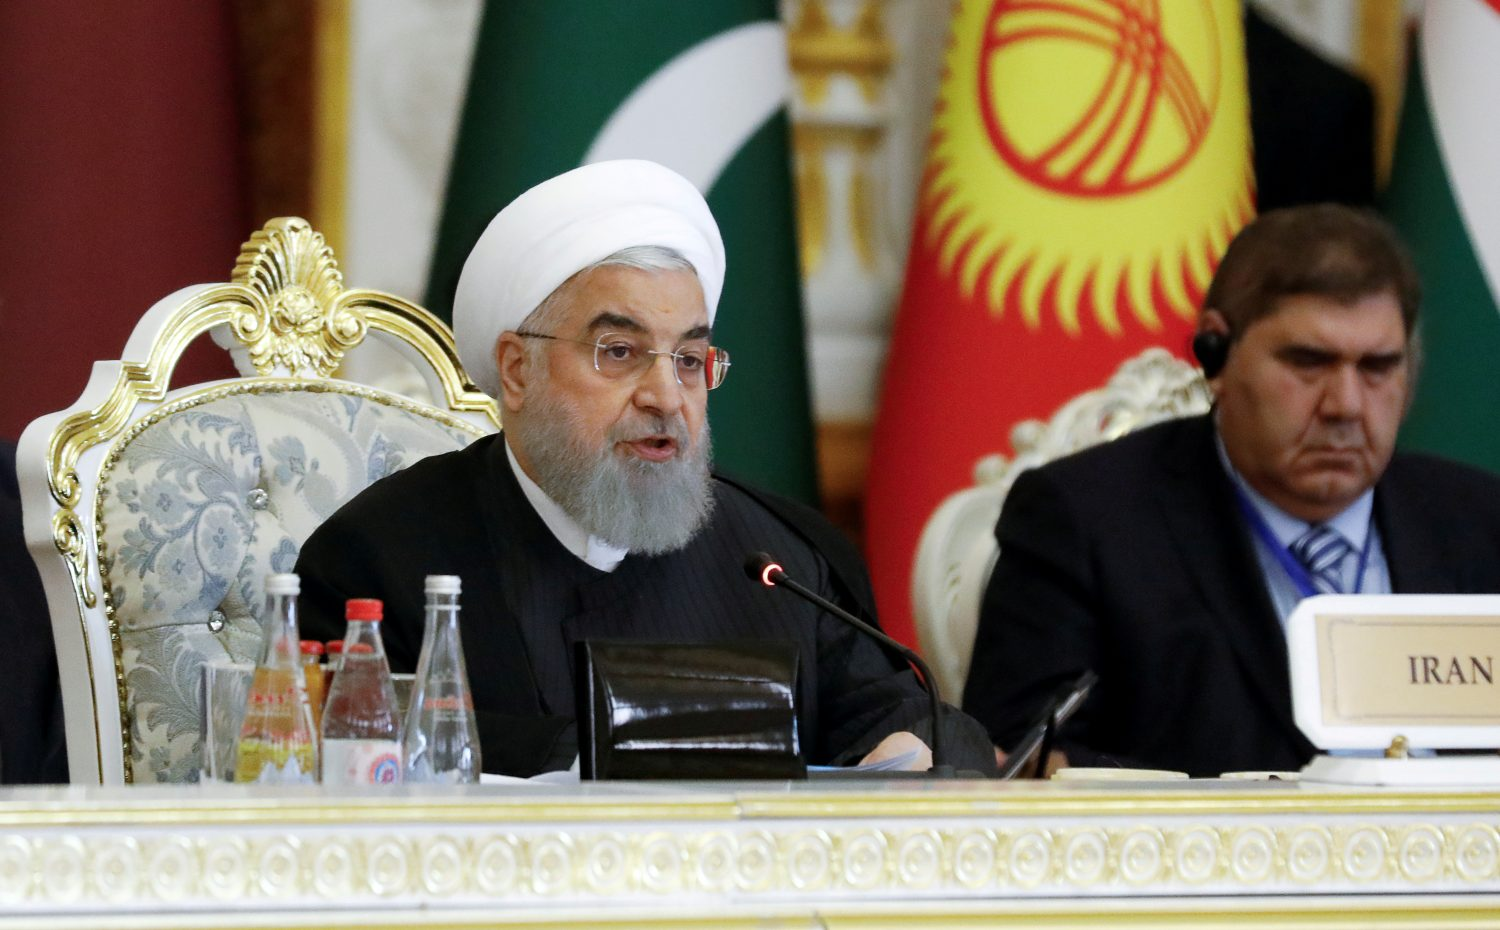 FILE PHOTO: Iranian President Hassan Rouhani delivers a speech at the Conference on Interaction and Confidence-Building Measures in Asia (CICA) in Dushanbe, Tajikistan June 15, 2019. REUTERS/Mukhtar Kholdorbekov/File Photo